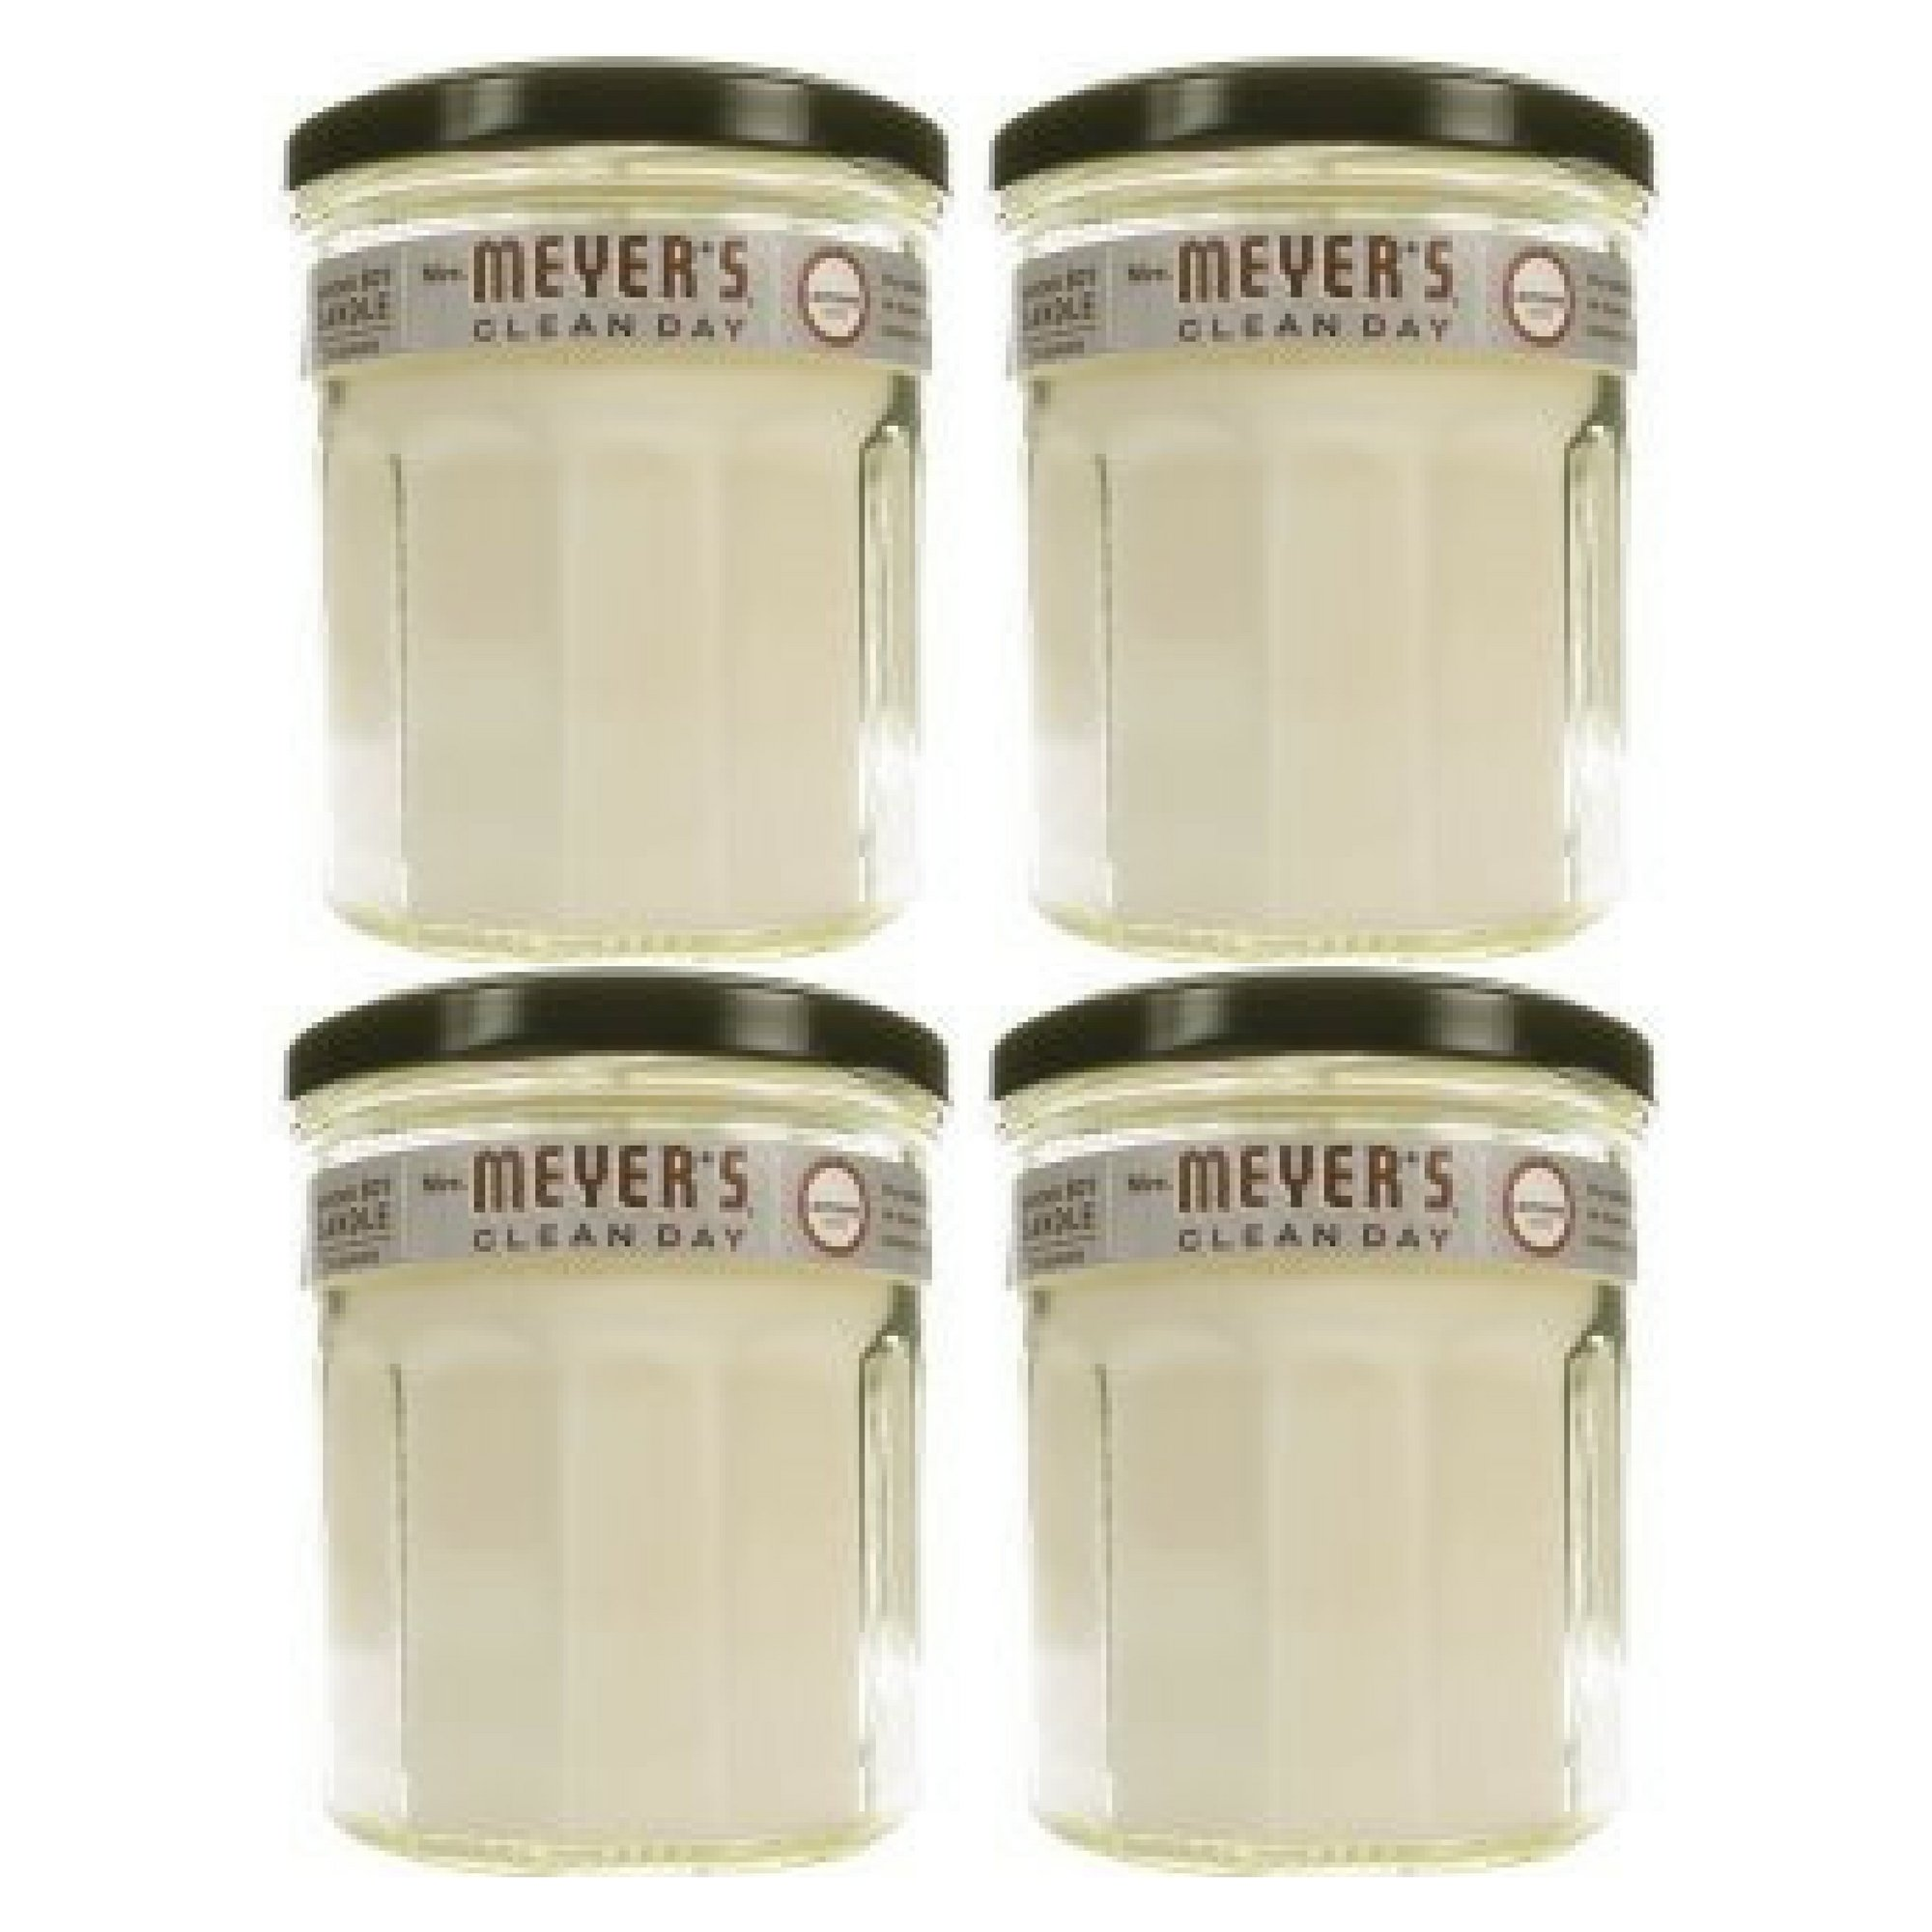 Mrs. Meyer's Clean Day Soy Candle Lavender Scented Large 7.2 Ounces - 4 count